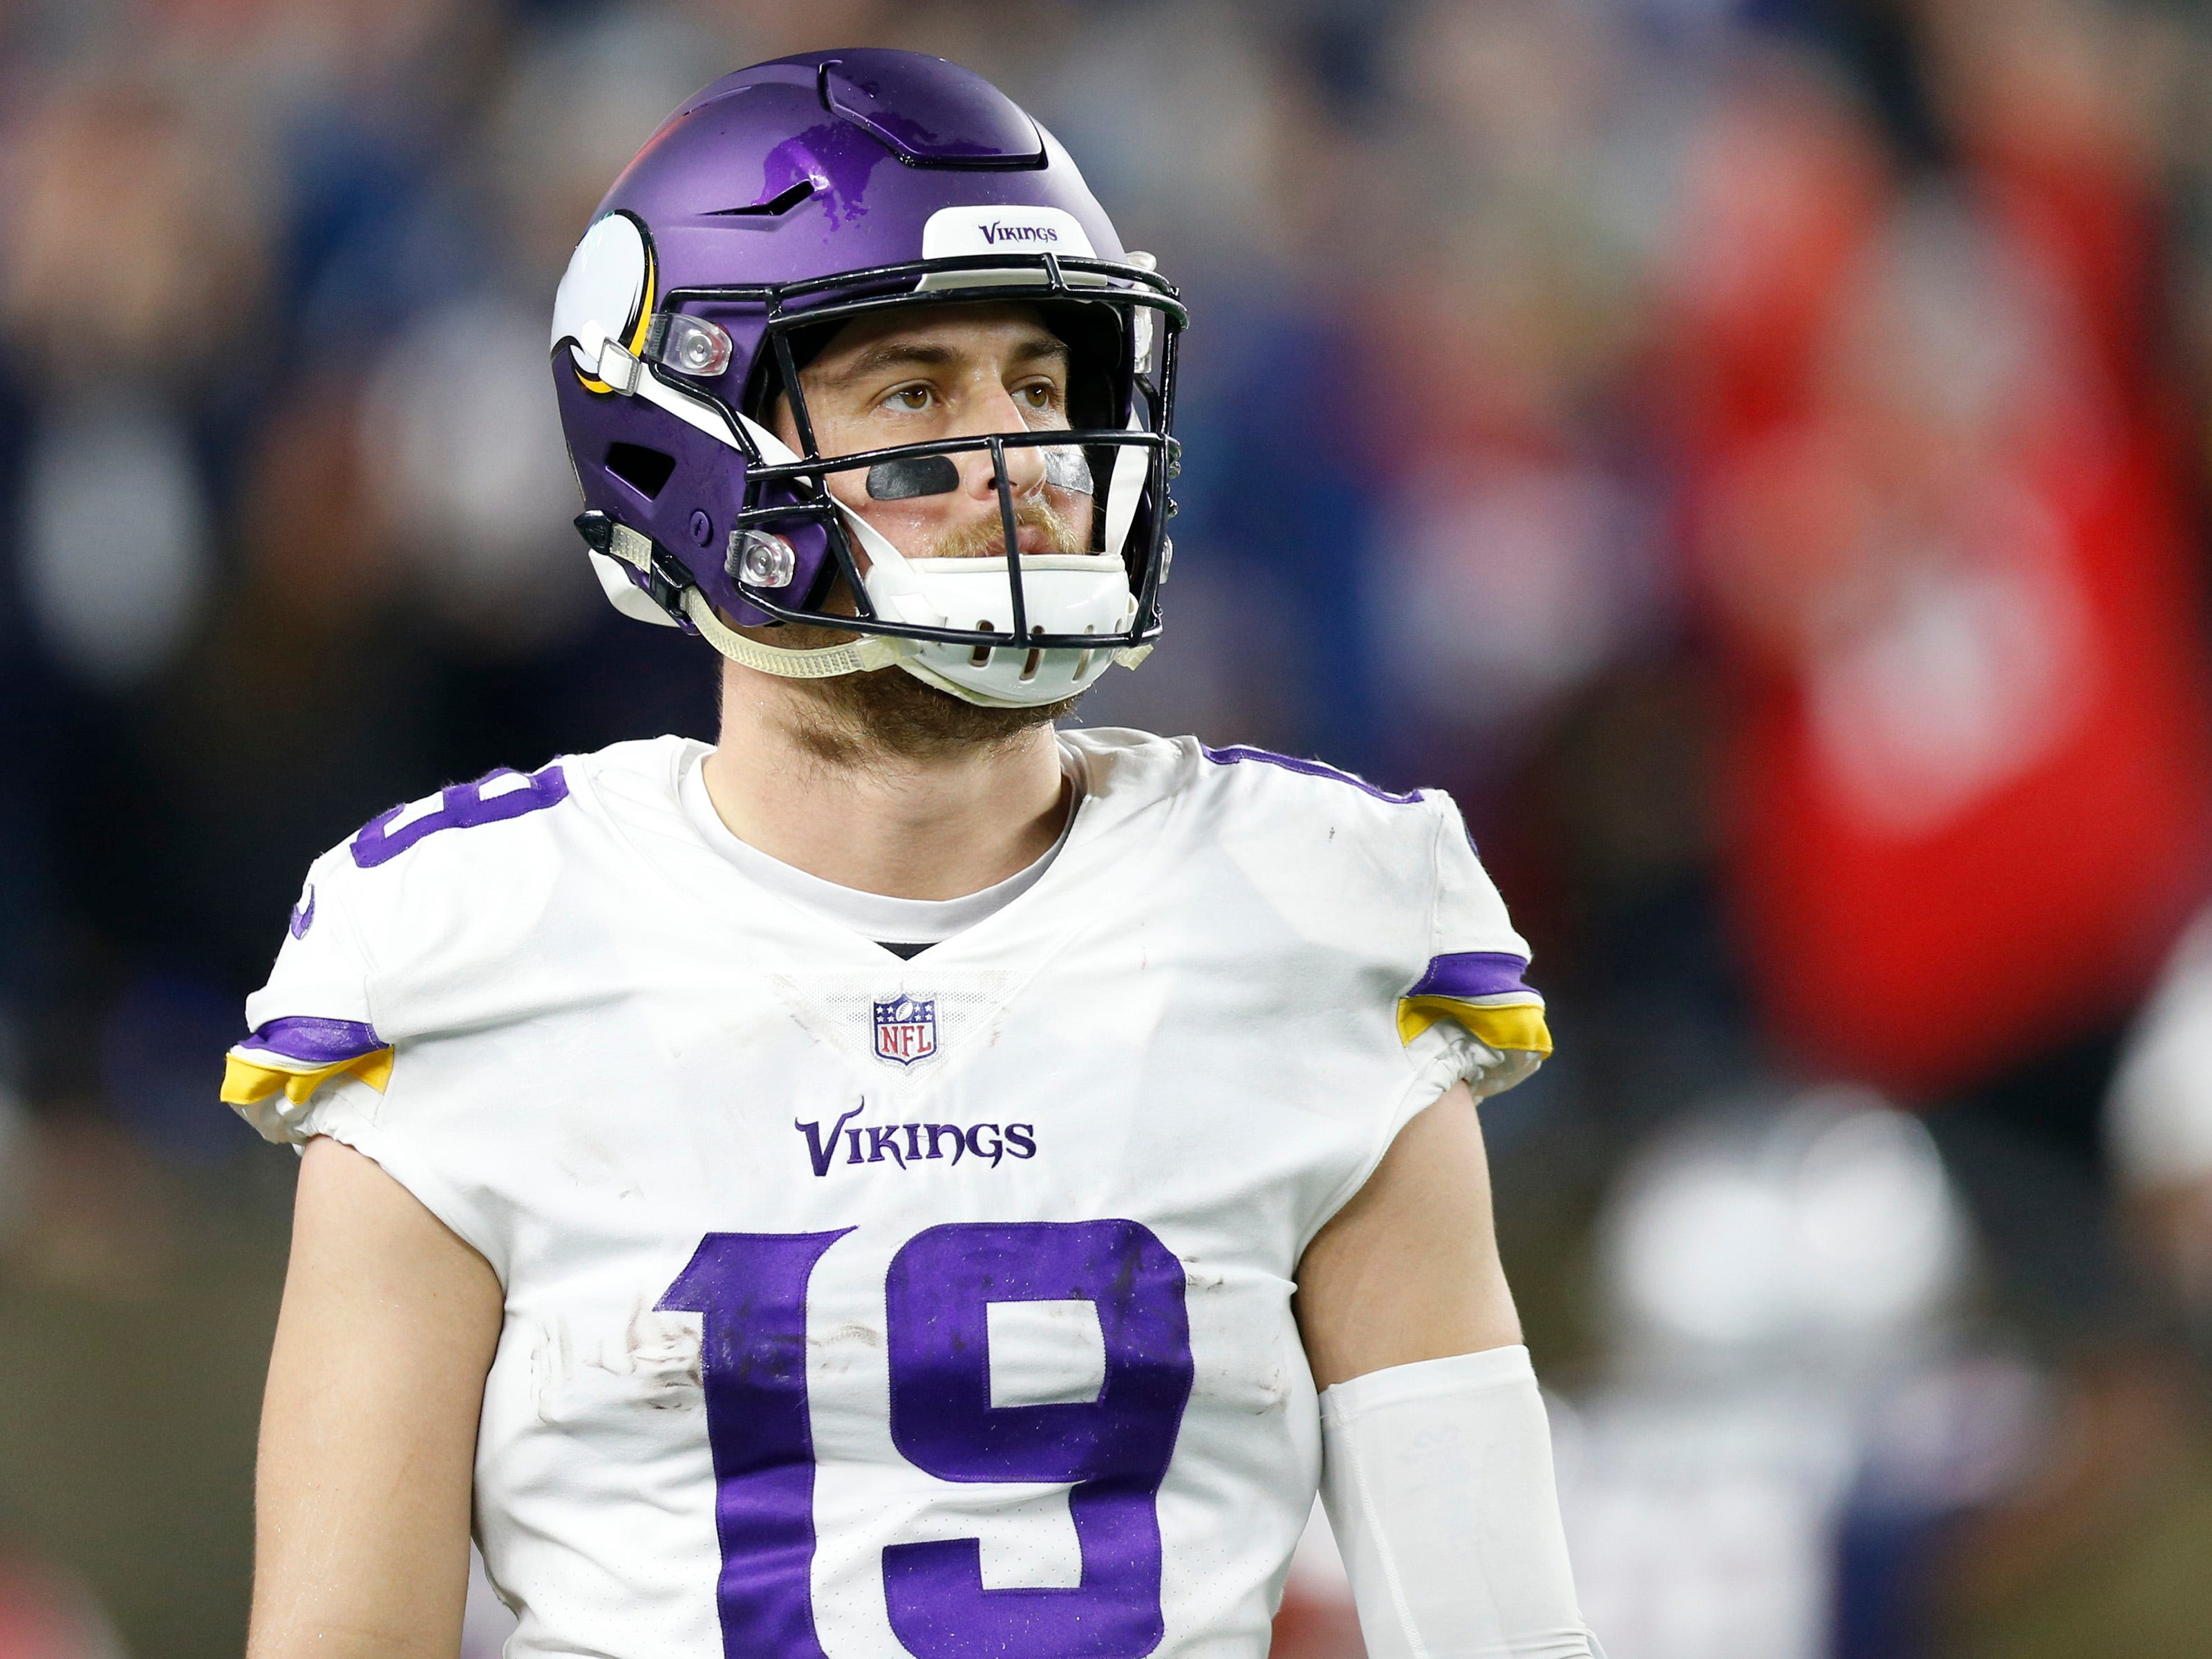 12. Vikings (6-5-1) | Last game: Lost to the Patriots, 24-10 | Previous ranking: 9 | The buzz: Vikings haven't topped 100 yards rushing since Nov. 4 win over the Lions.